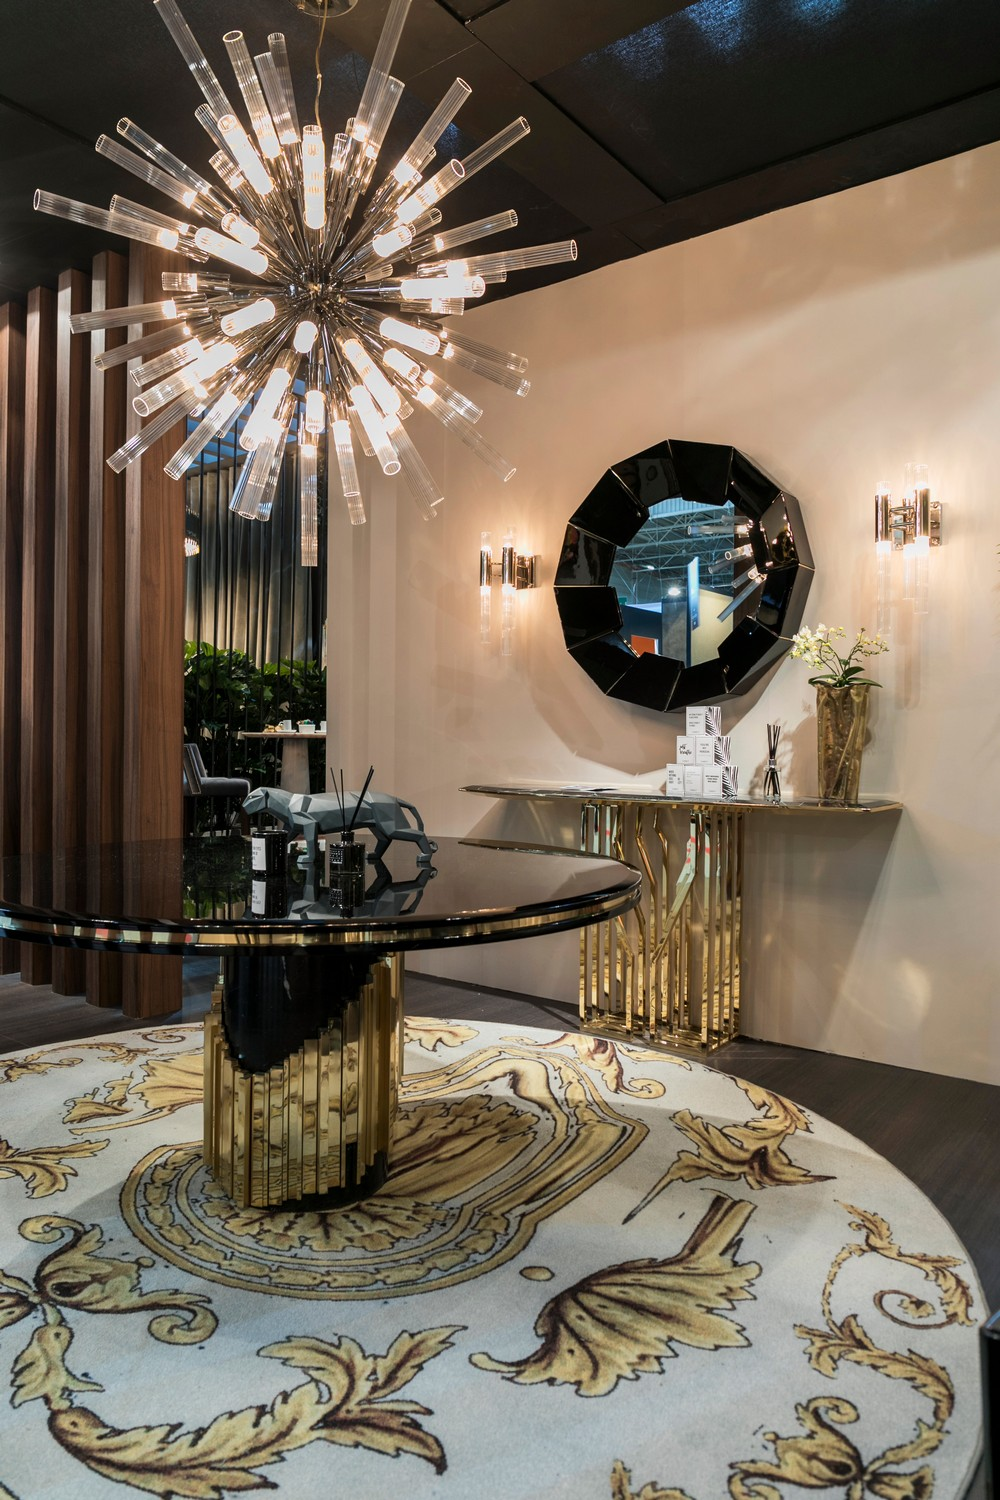 maison et objet 2020 Feast Your Eyes to the Best Moments of Maison et Objet 2020 Feast Your Eyes to the Best Moments of Maison et Objet 2020 20